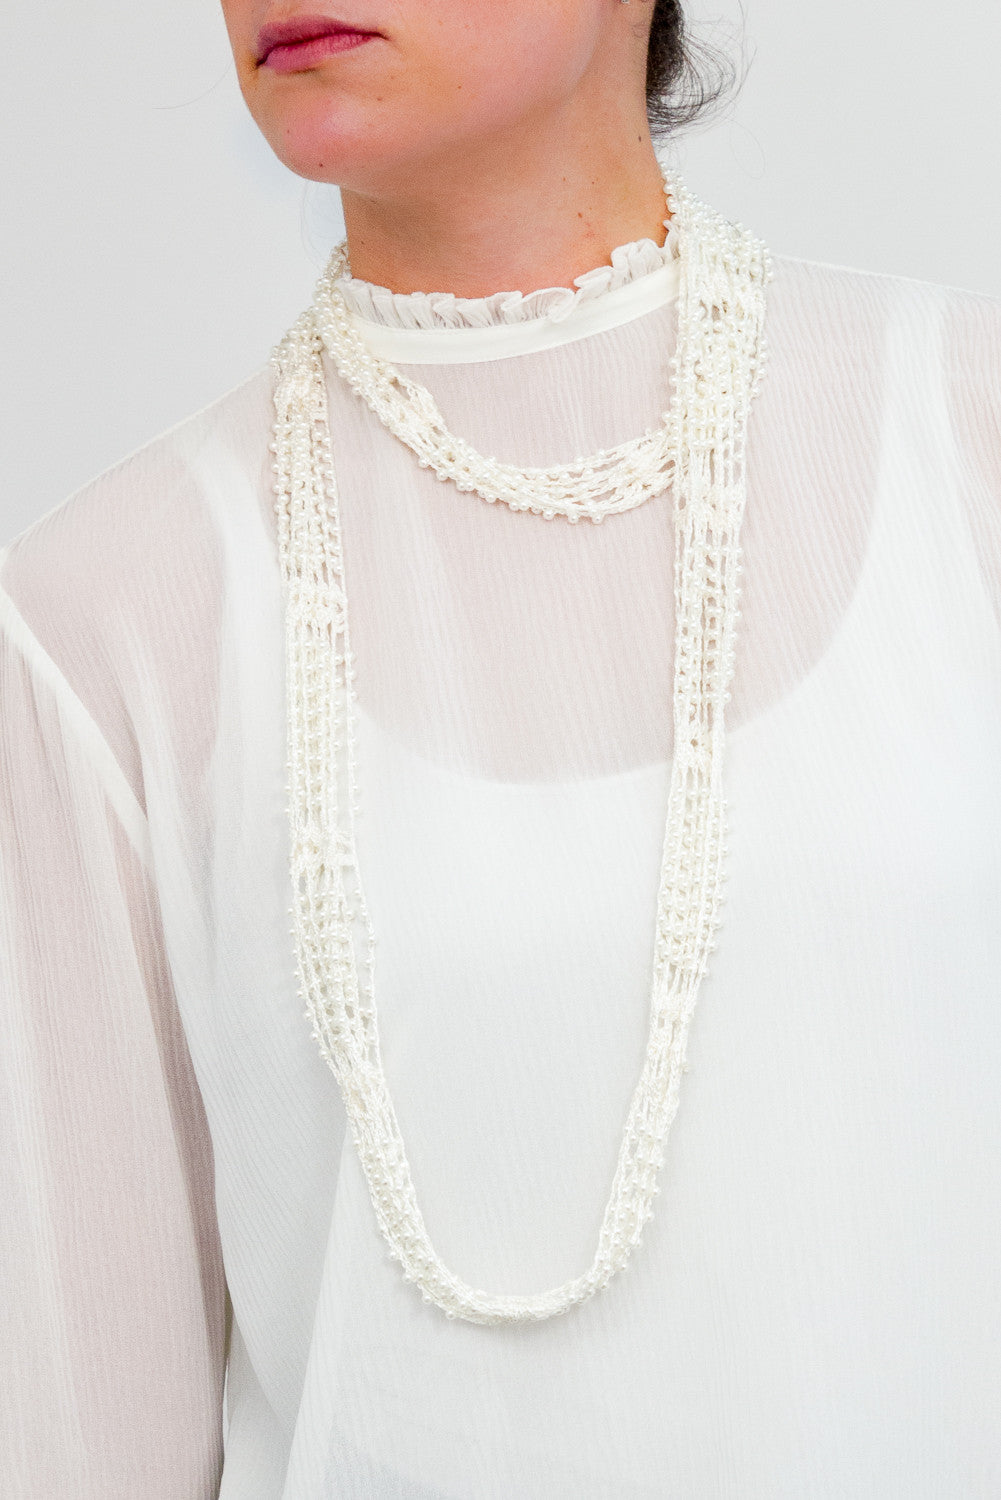 Crochet Pearl Necklace Scarf - Just Jamie